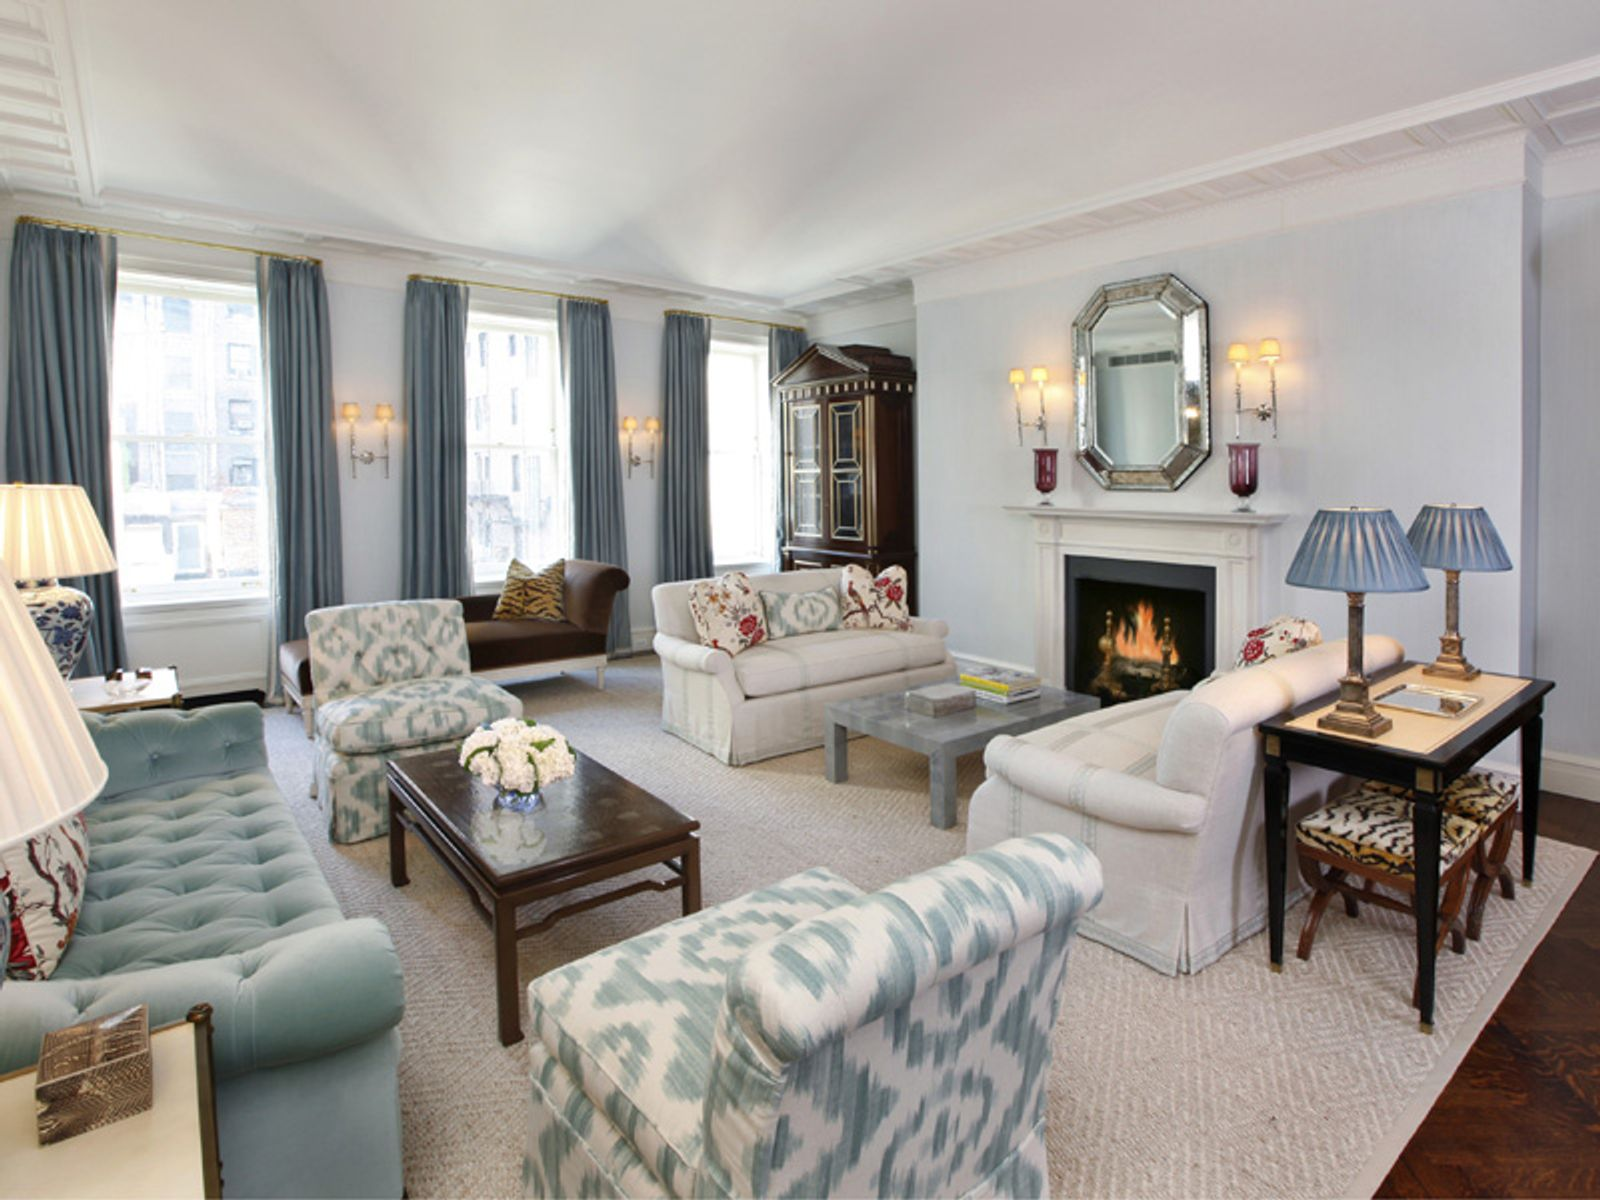 Superb Renovation at 812 Park Ave, New York NY Cooperative - New York City Real Estate